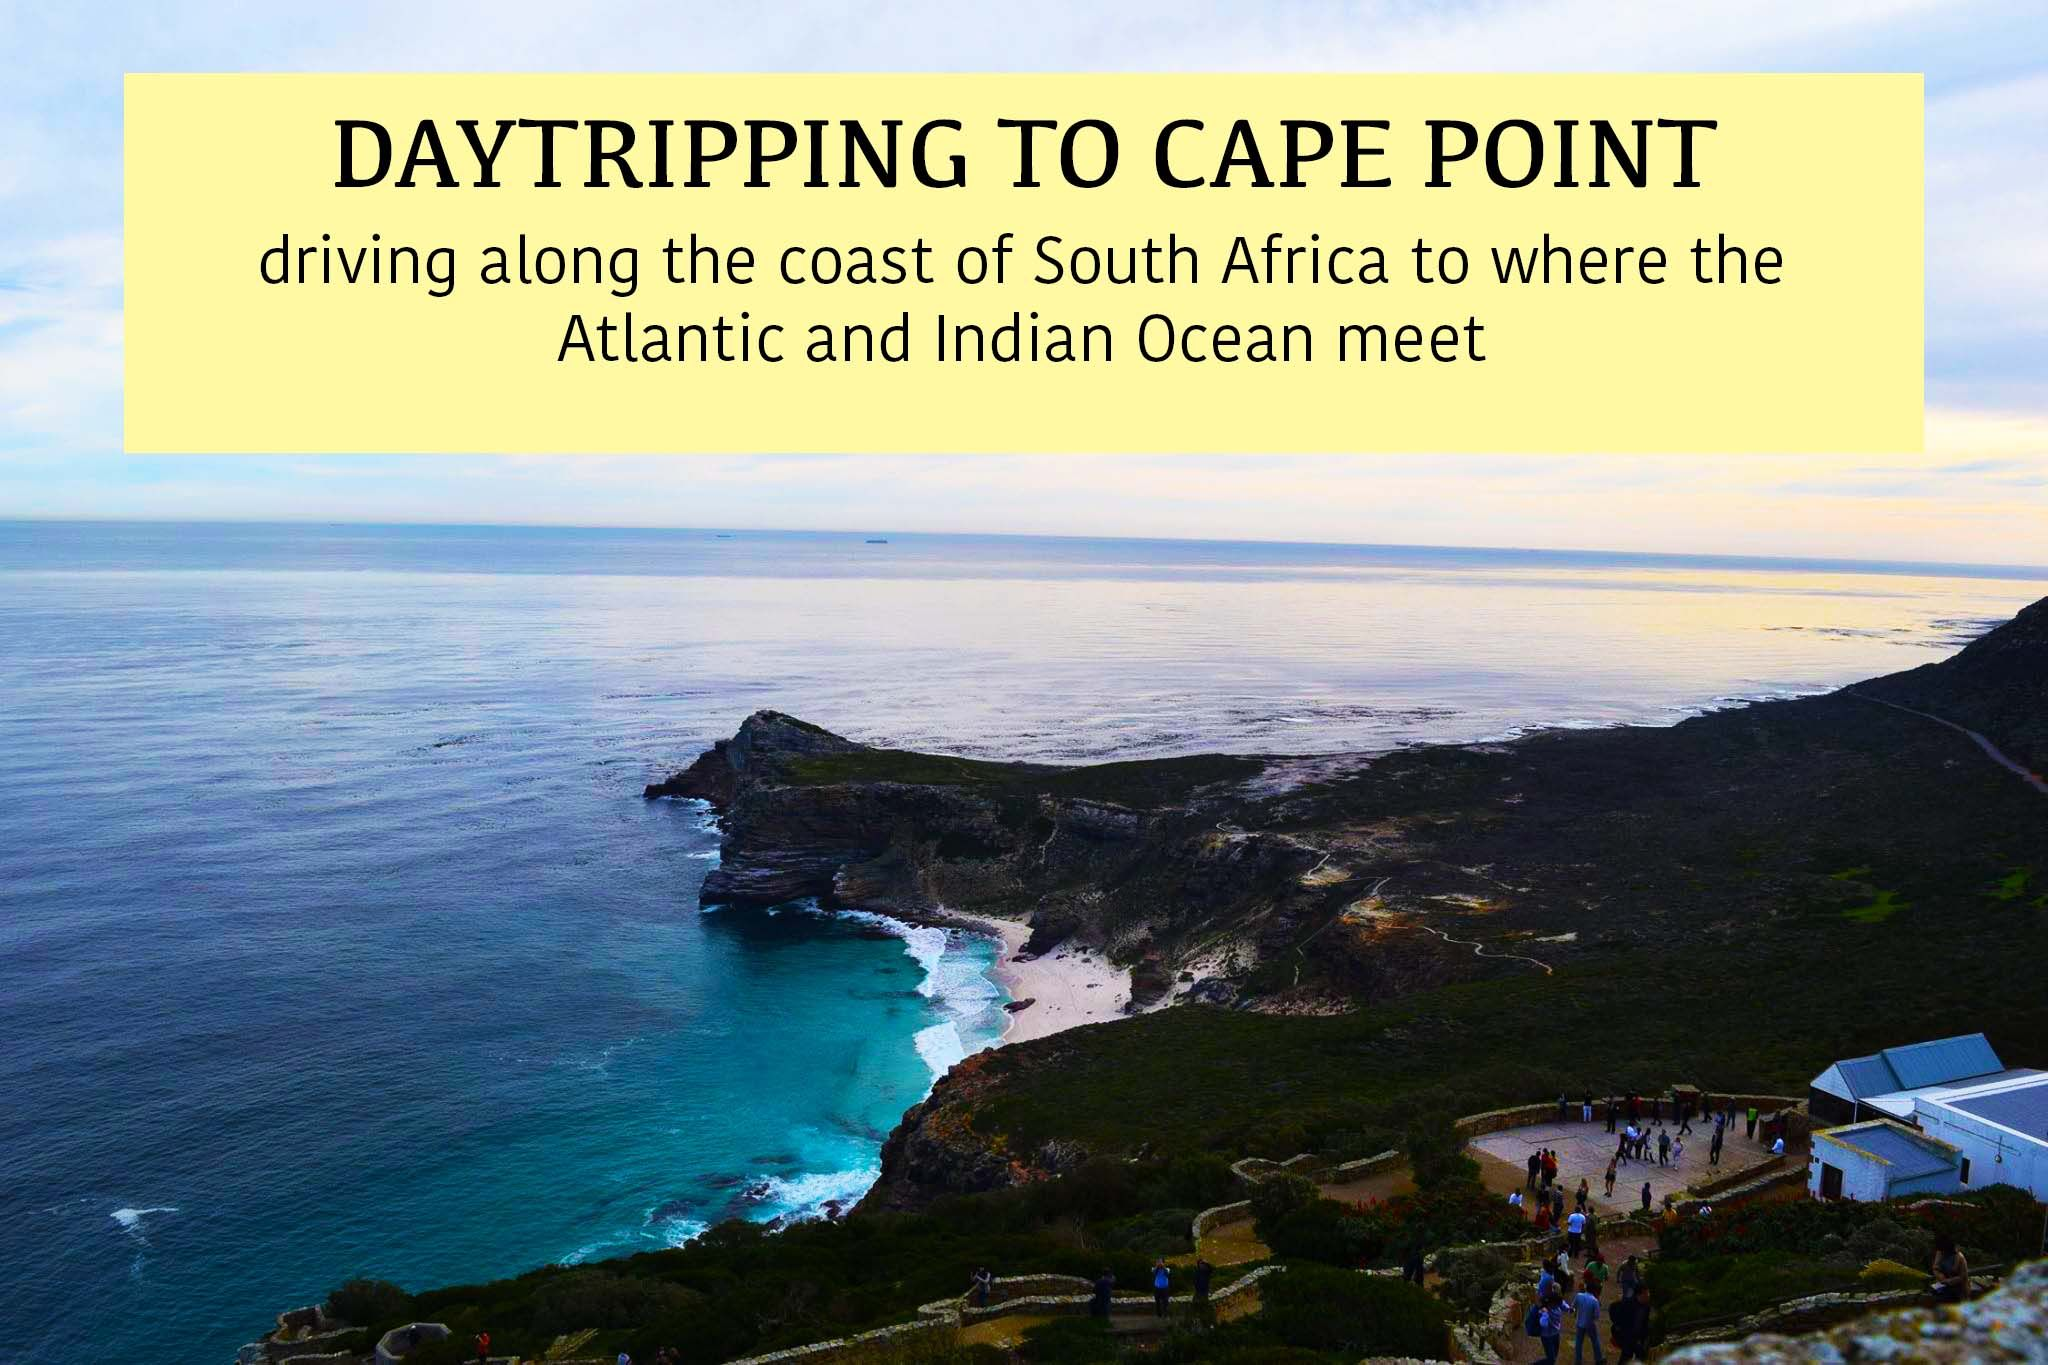 Daytripping to the Cape Point, South Africa — #themaydaily #capepoint #daytrip #southafrica #travel #africa #driving #capetown #ocean #adventure #familyvacation #capeofgoodhope #tablemountainnationalpark #simonstown #houtbay